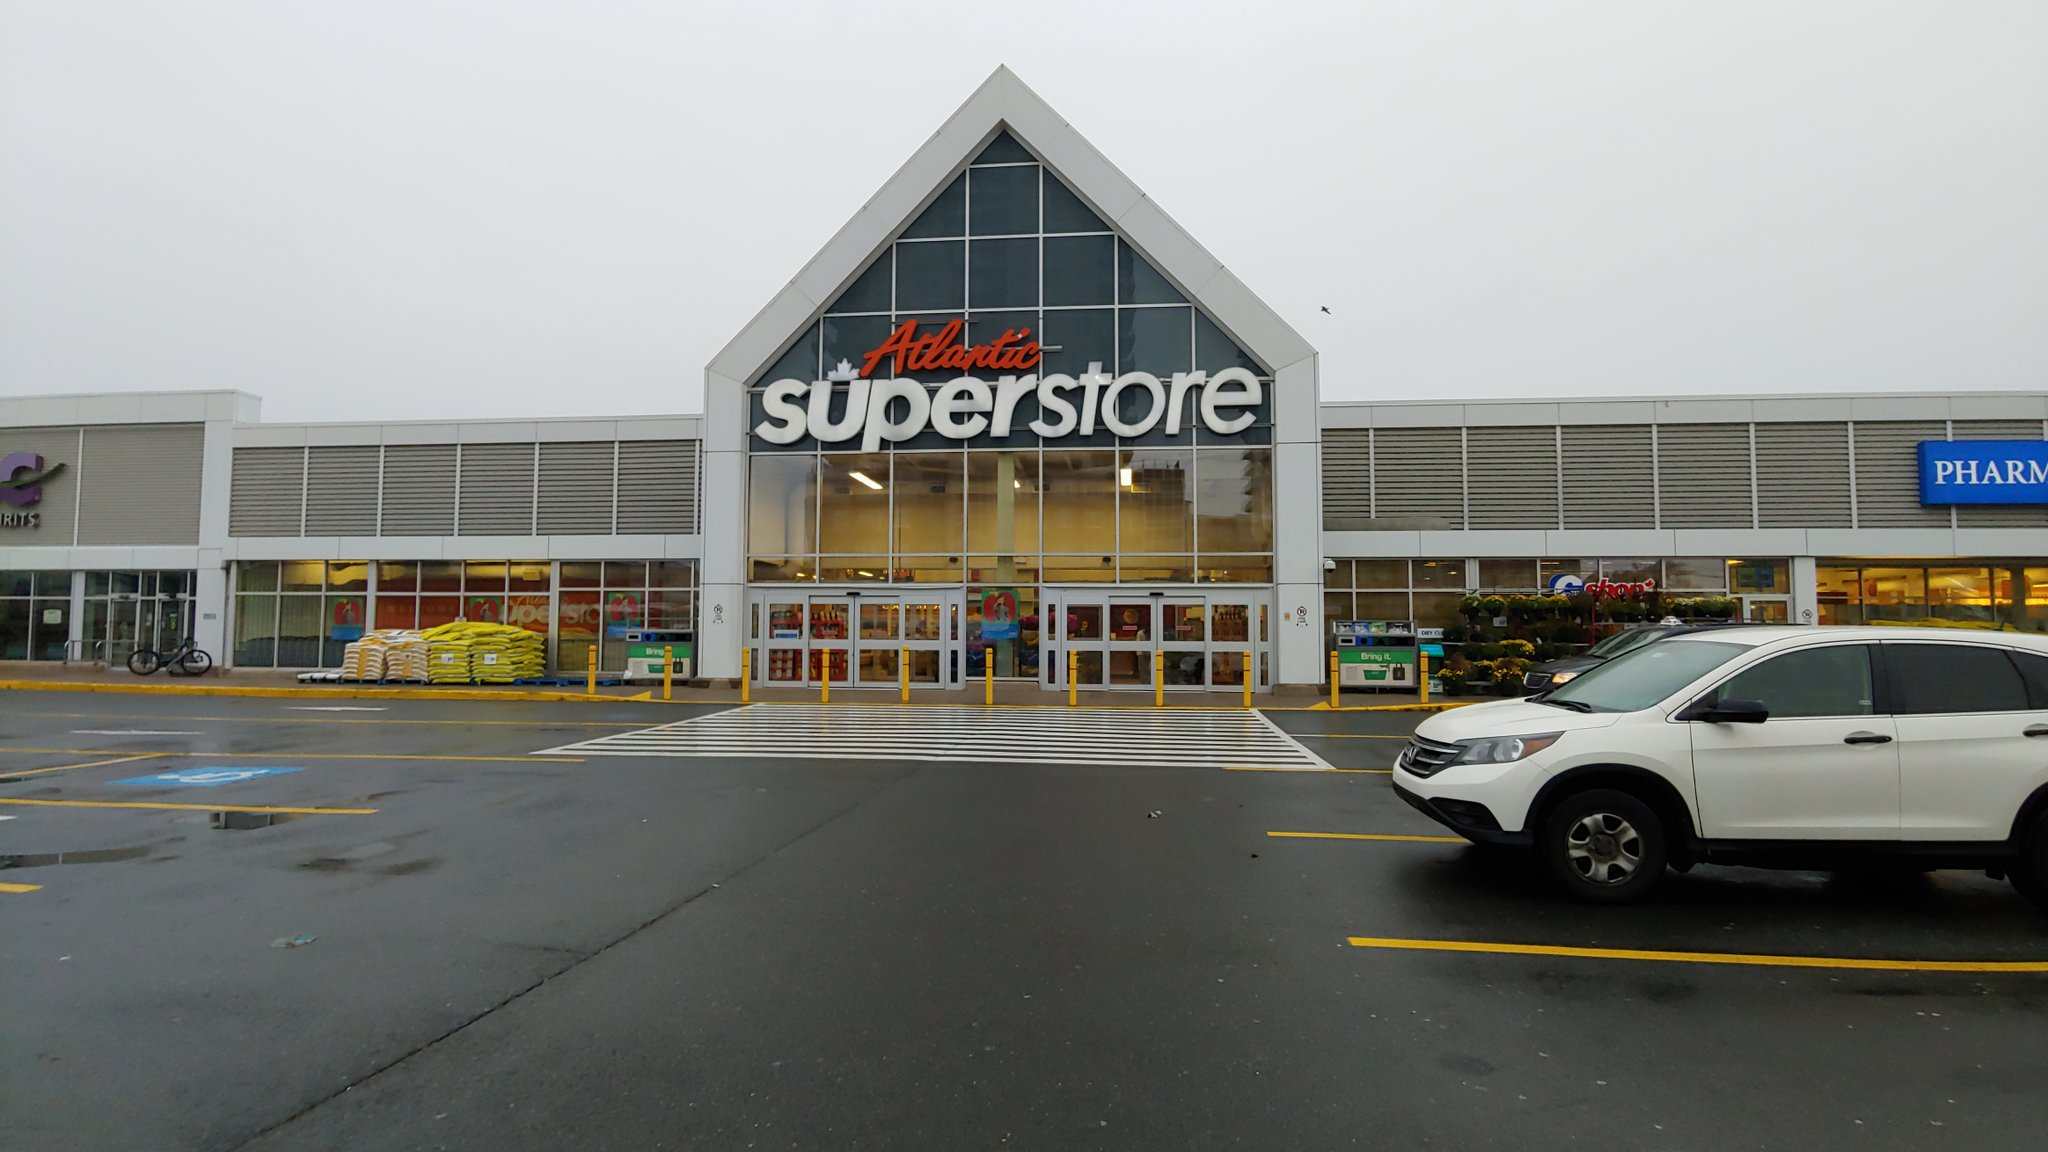 Police investigating robbery at North End Supertstore smoke shop